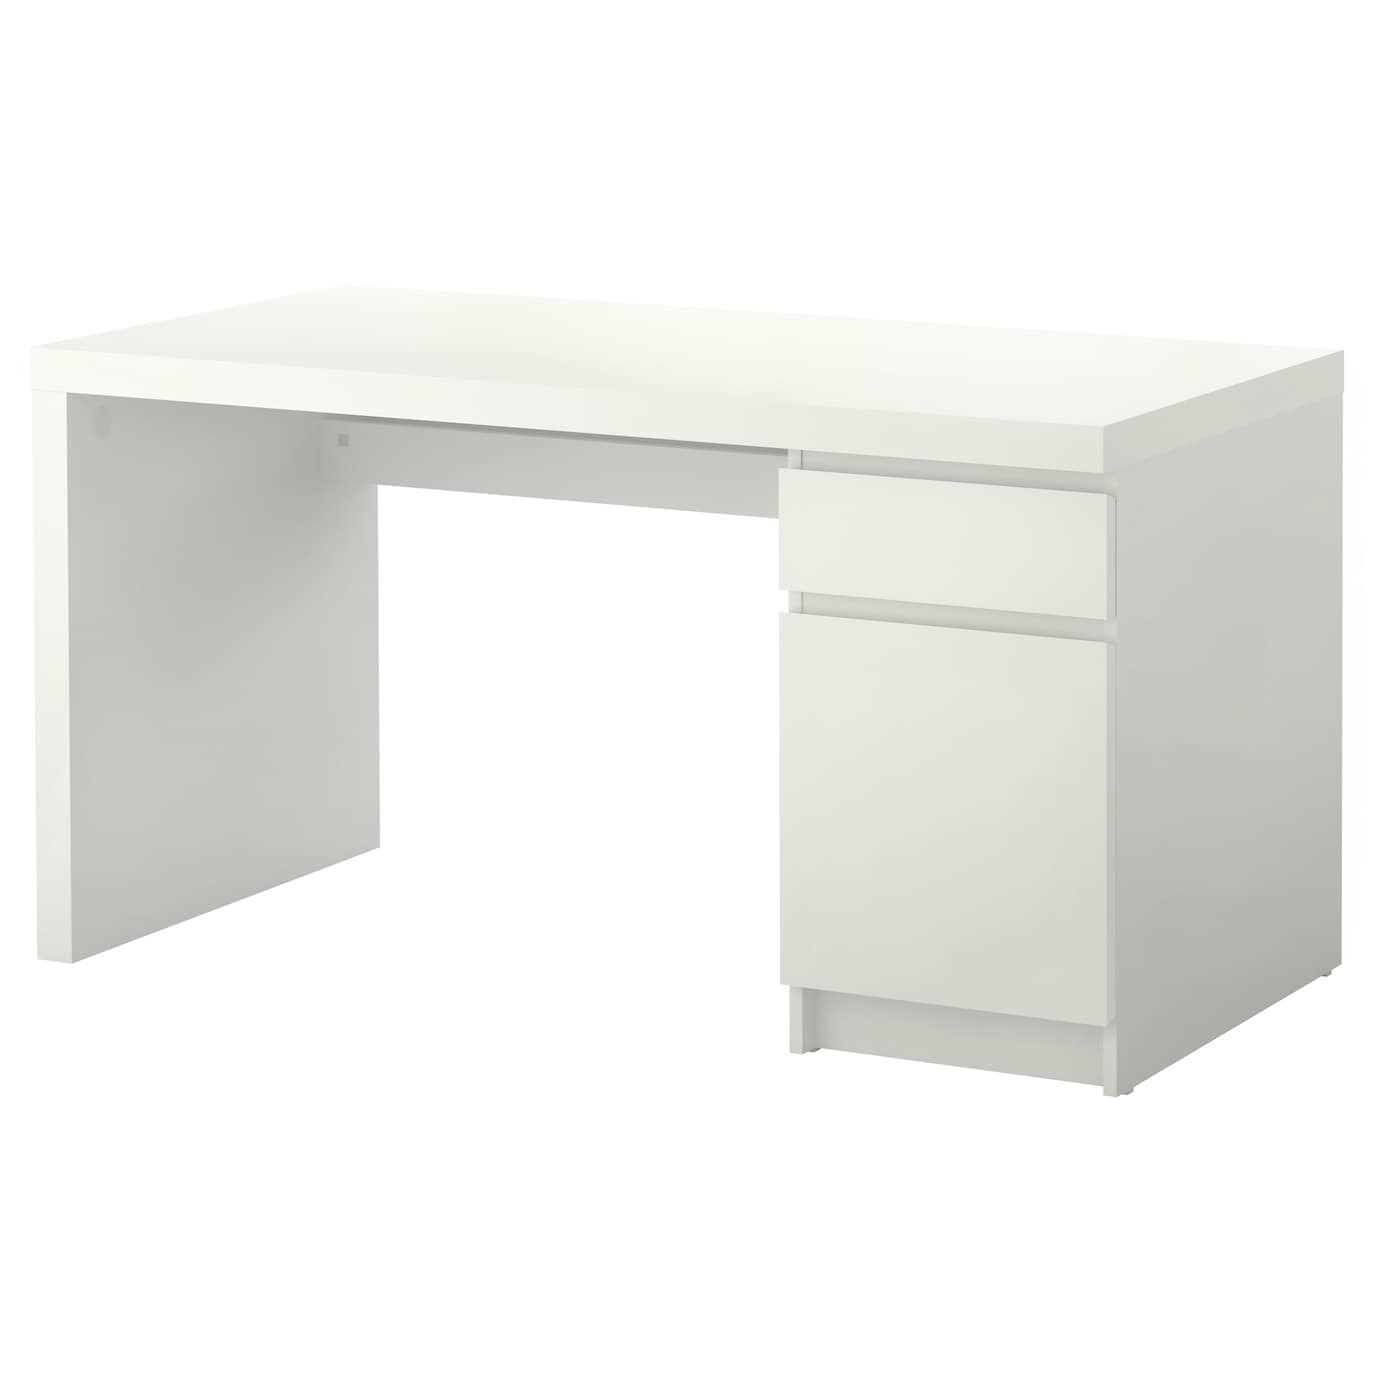 Ikea Malm Desk Can Be Placed In The Middle Of A Room Because Back Is